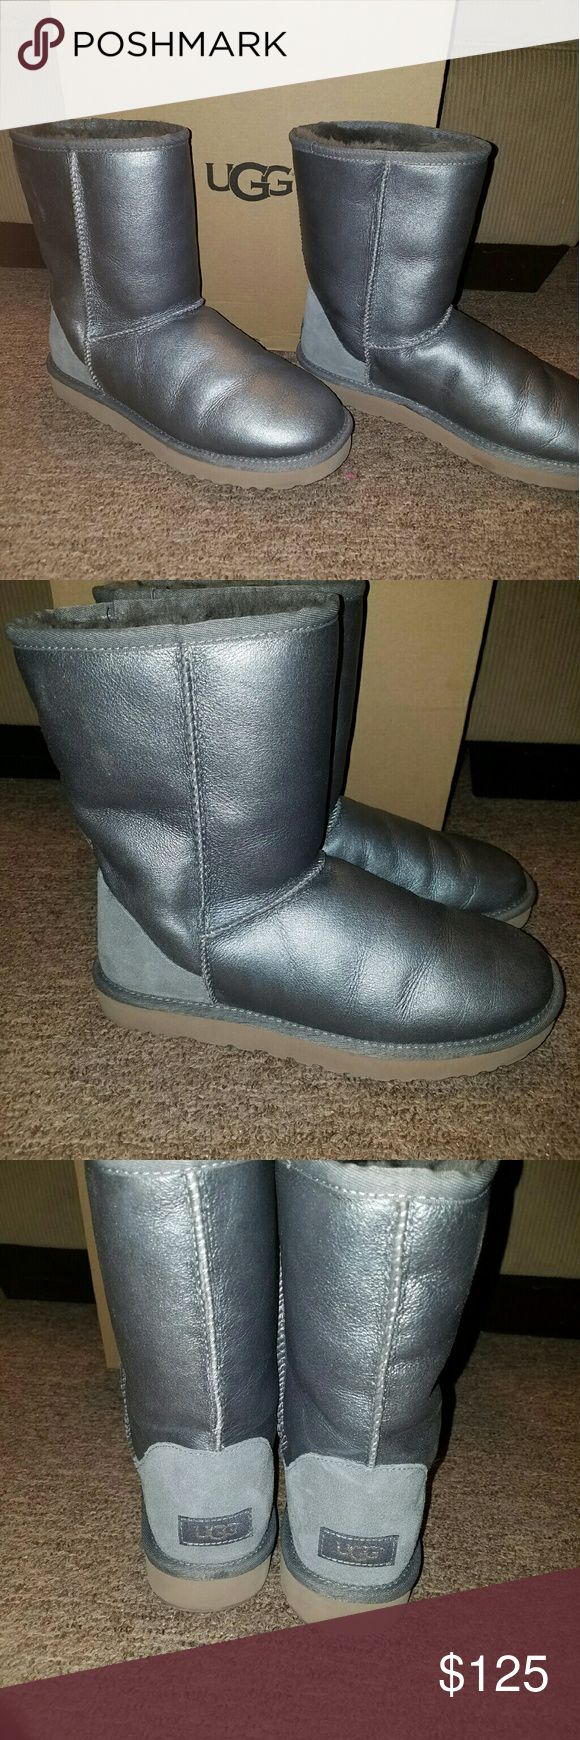 "Metallic silver women's ugg short boots Metallic silver women's size 10 ugg boots. Worn once and in amazing conditon. 8"" shafts height , Eva outsole , ugg pure wool inside UGG Shoes"